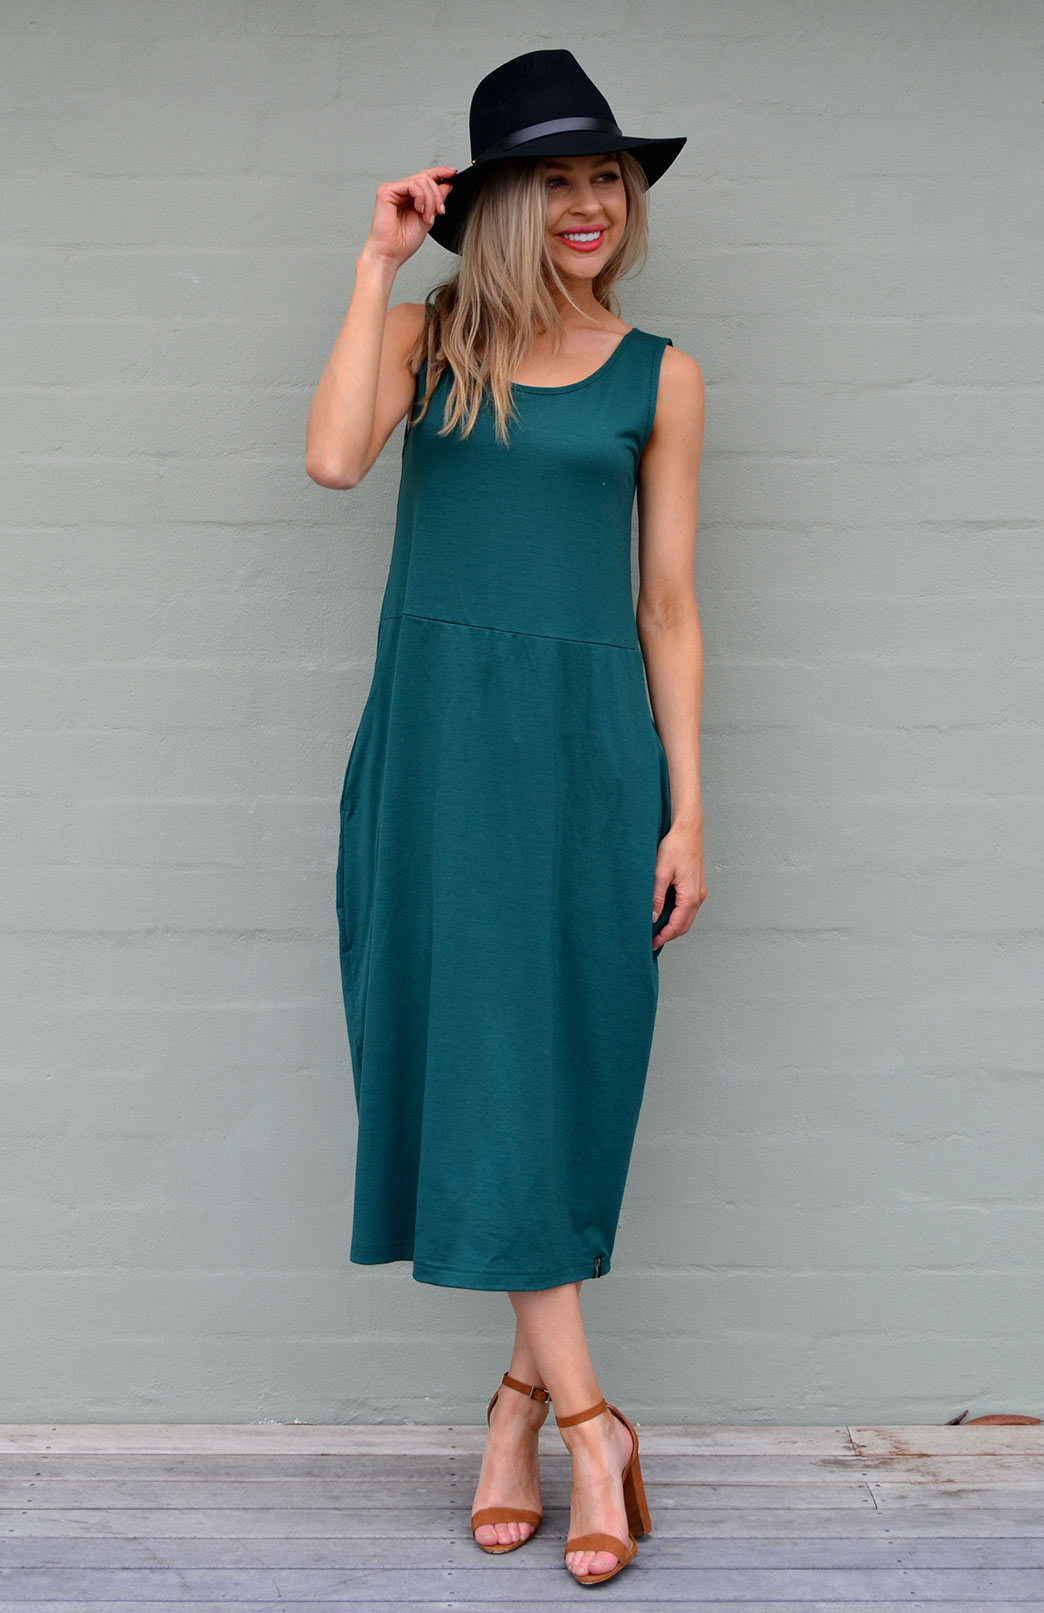 Rosie Dress - Women's Merino Wool Emerald Green Sleeveless Dress with Curvy Skirt and Pockets - Smitten Merino Tasmania Australia